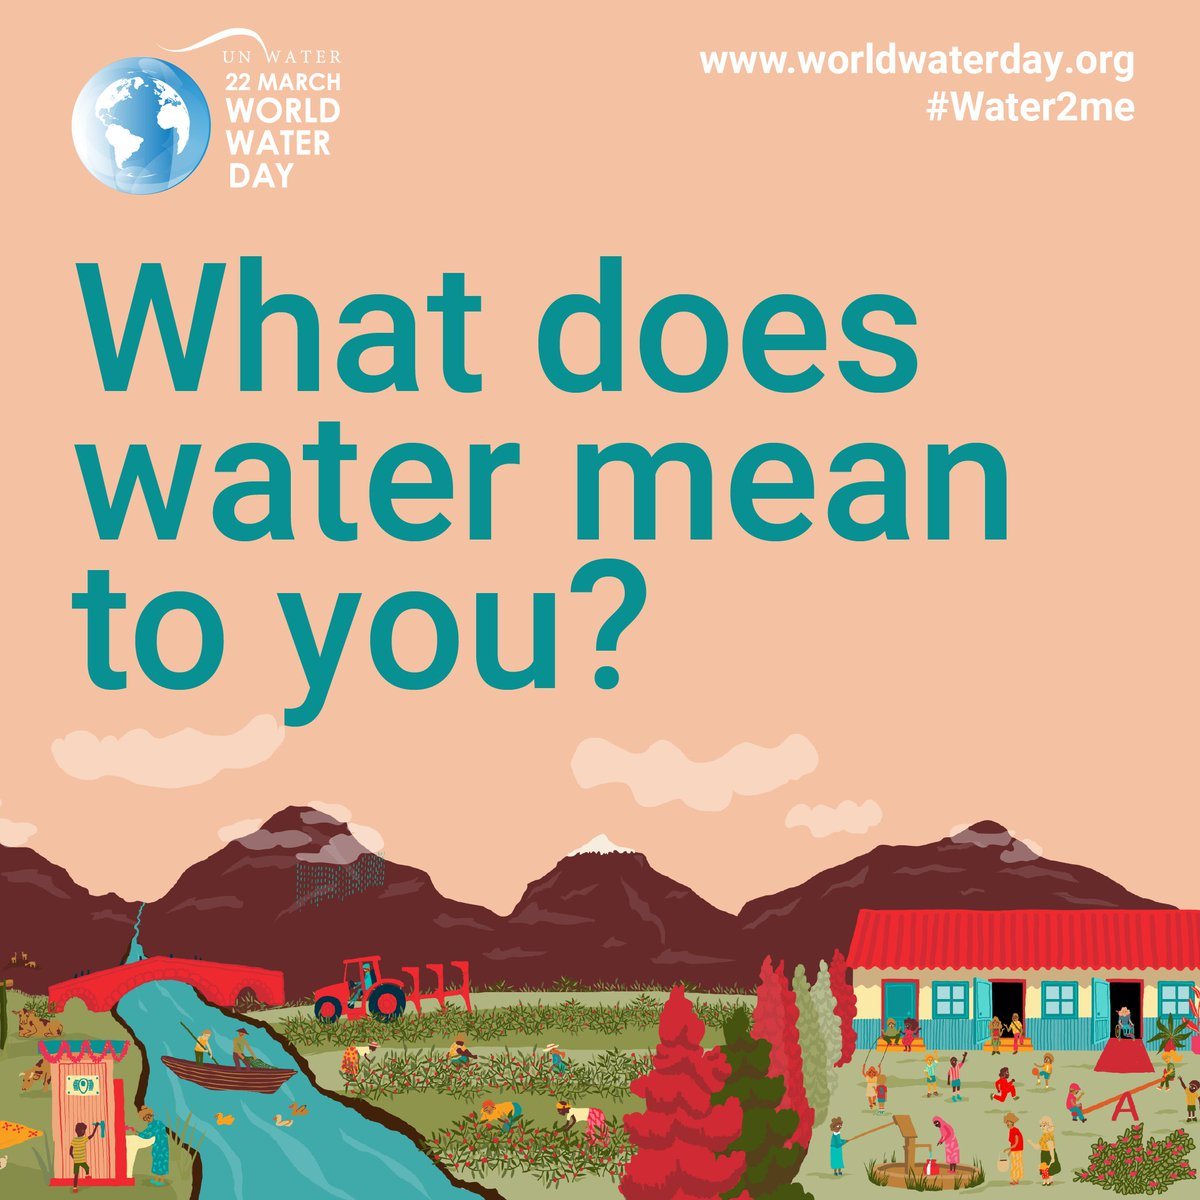 Water🚰 is under extreme threat from, ✅Growing population ✅Increasing demands of agriculture & industry ✅The worsening impacts of climate change We need to value water💧 and safeguard it effectively .  What does water mean to you? #Water2me  📖